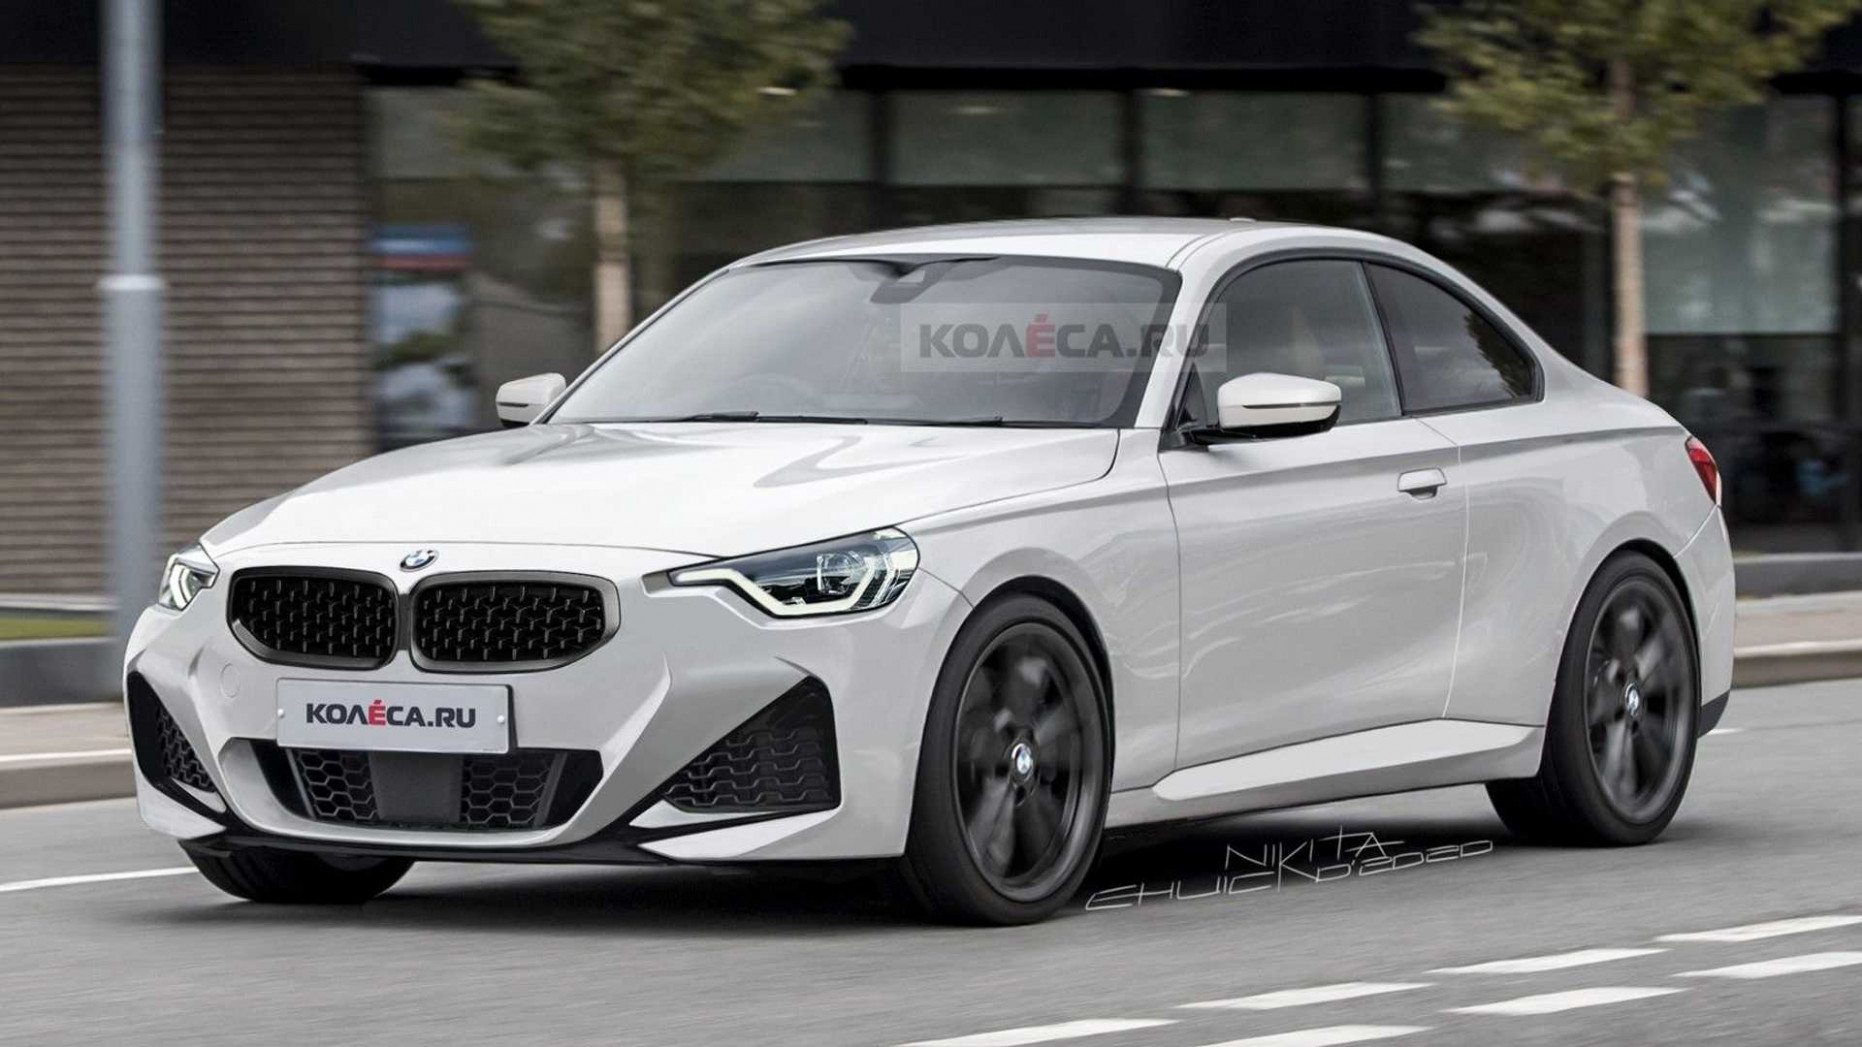 Picture 2022 Spy Shots BMW 3 Series